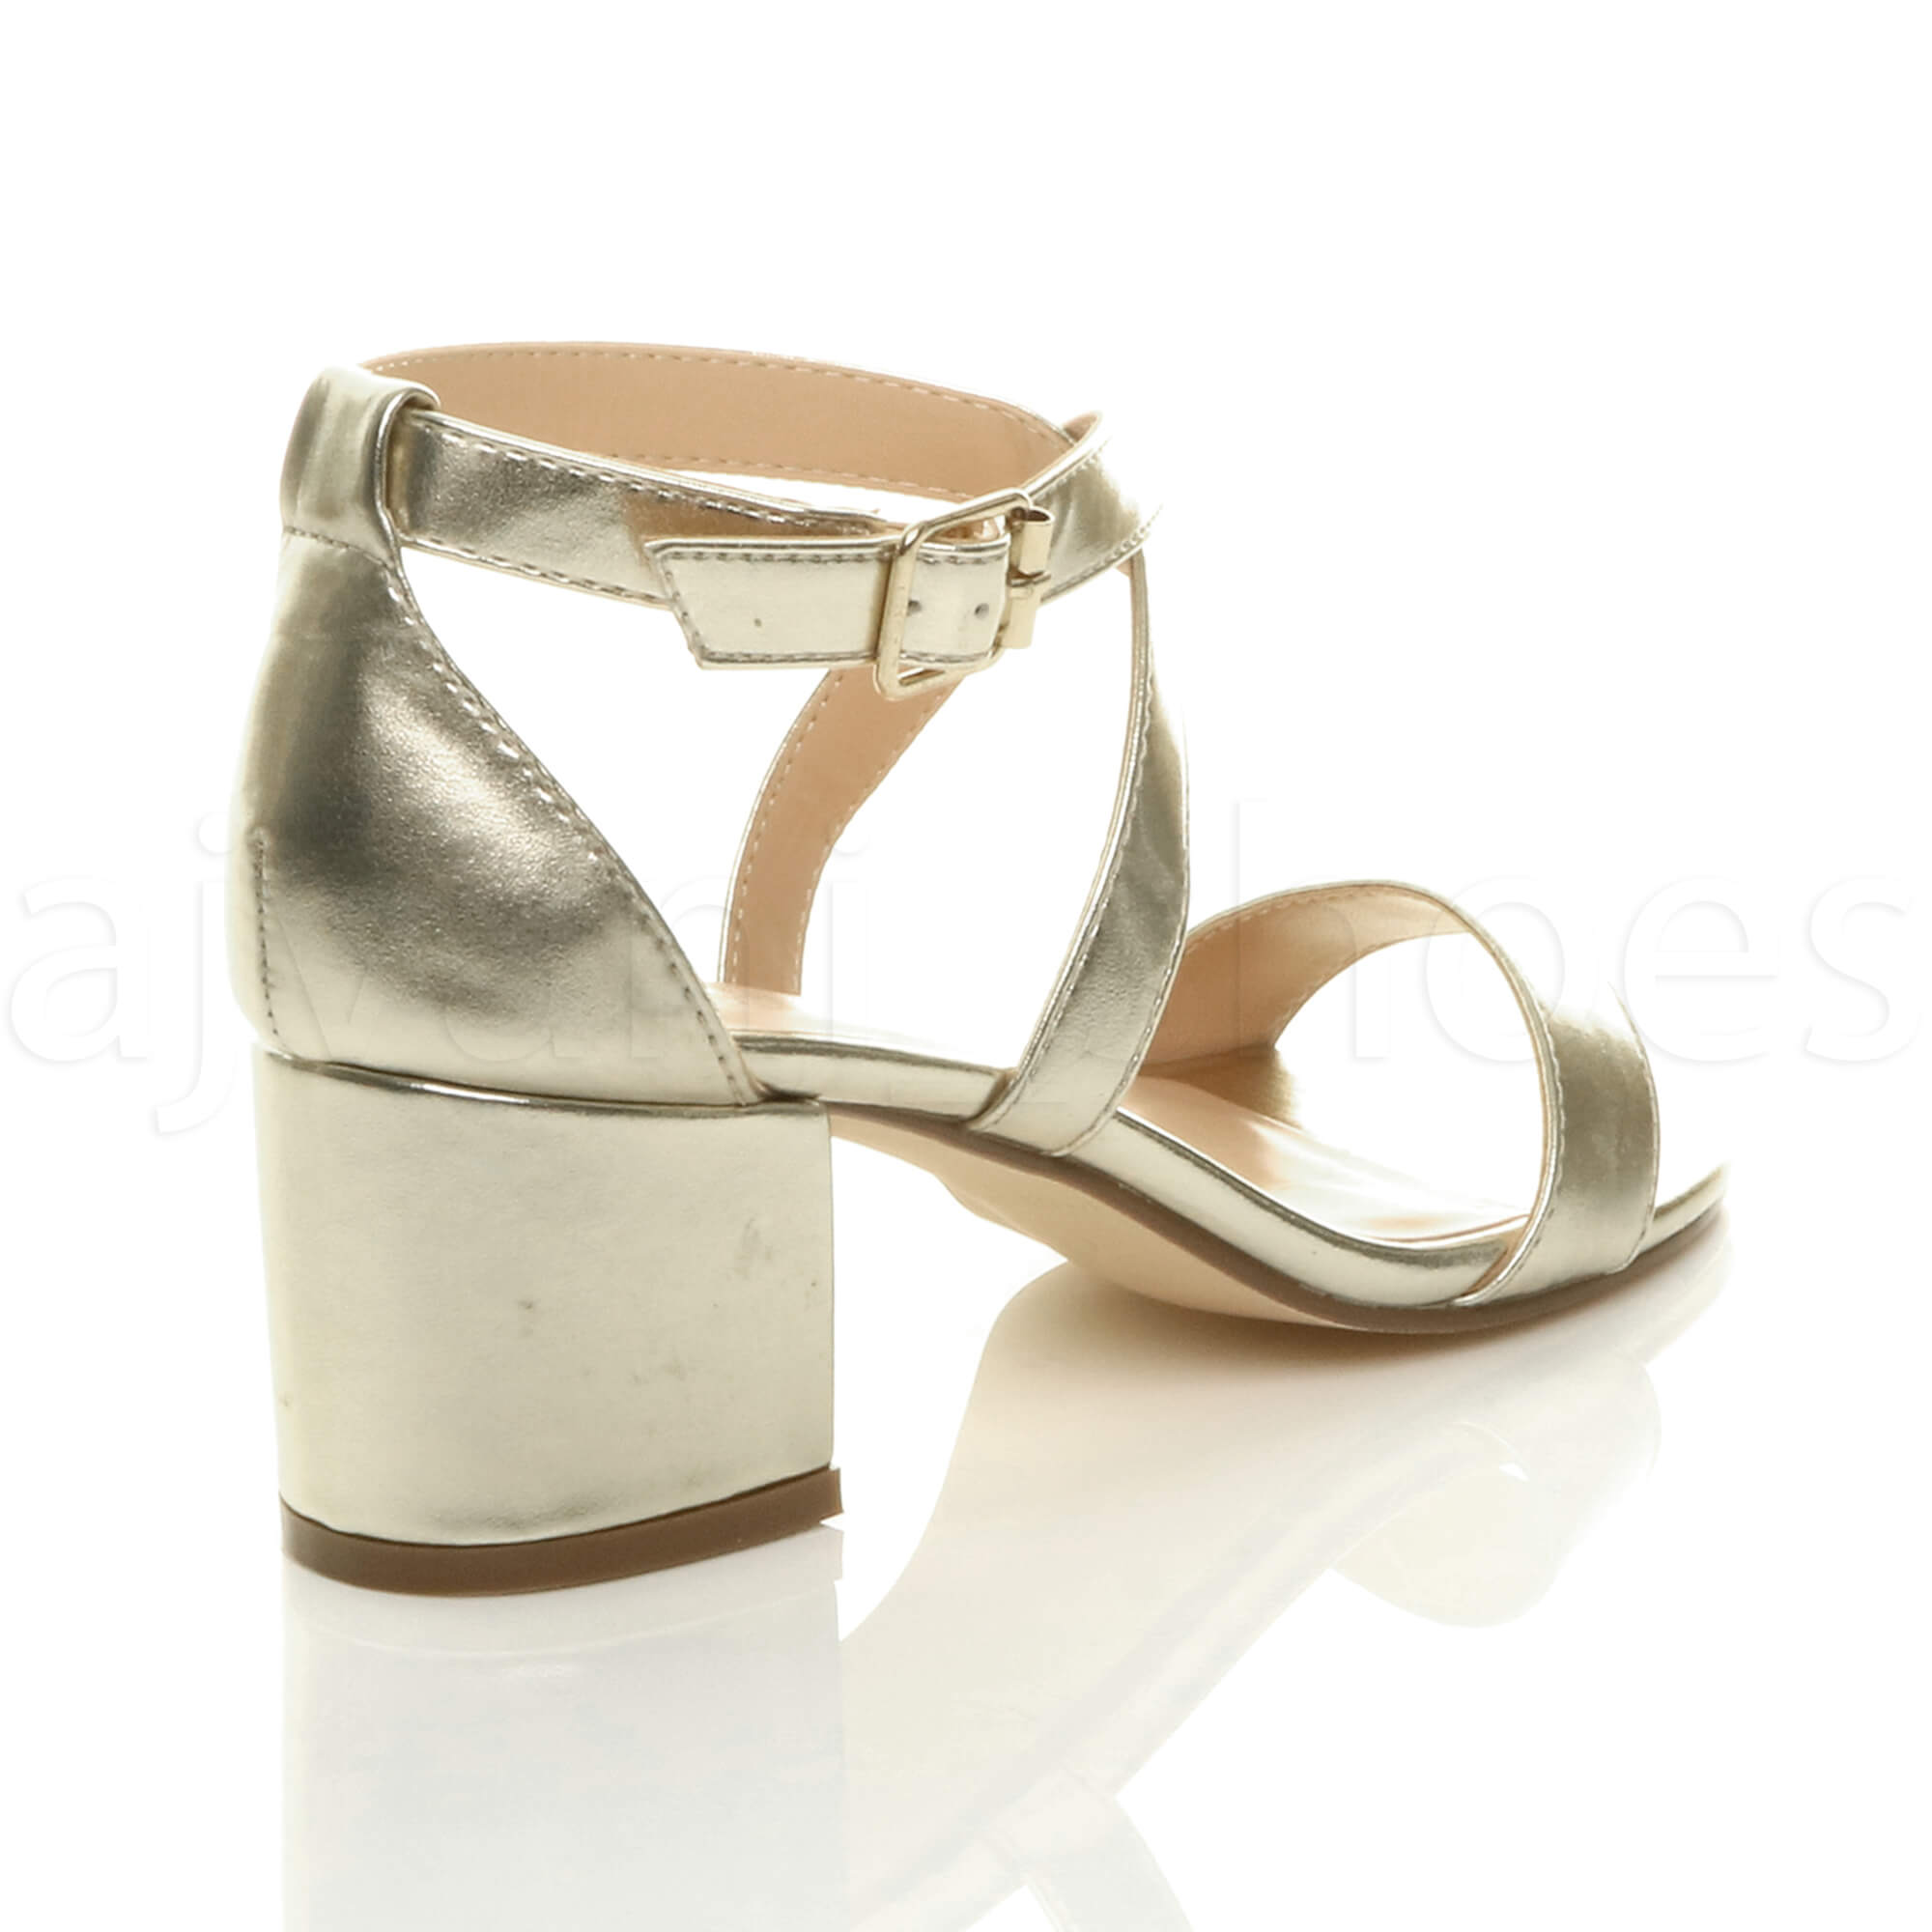 WOMENS-LADIES-MID-LOW-BLOCK-HEEL-CROSS-STRAPS-PARTY-STRAPPY-SANDALS-SHOES-SIZE thumbnail 32